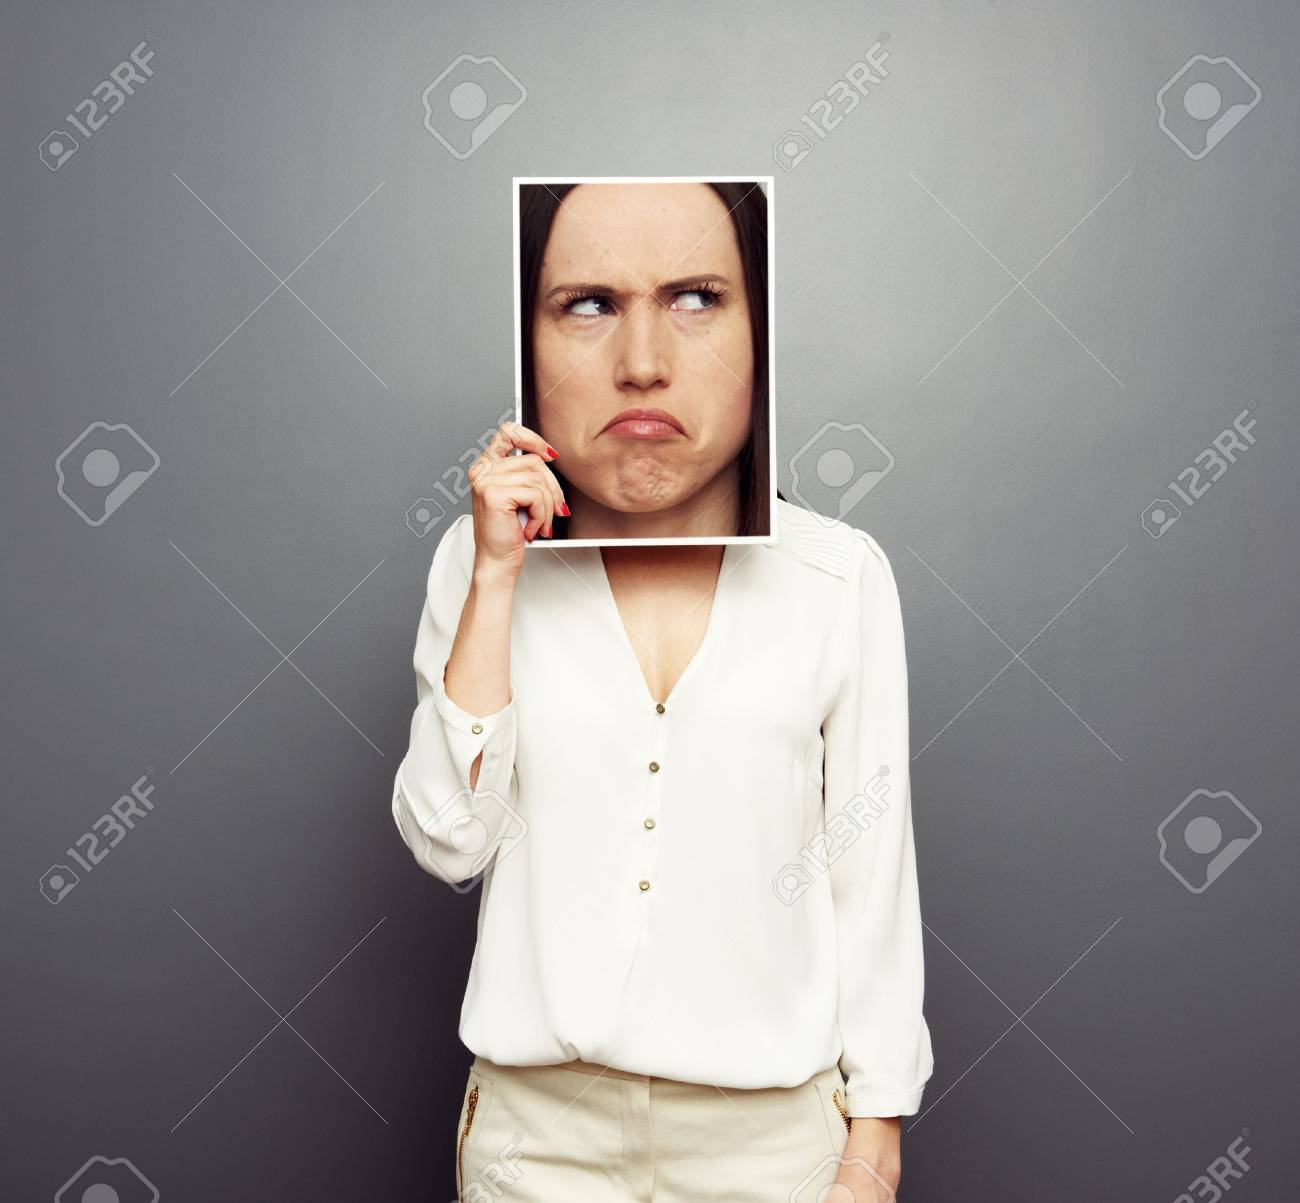 young woman covering image with big pensive face. concept photo over grey background Stock Photo - 19377963